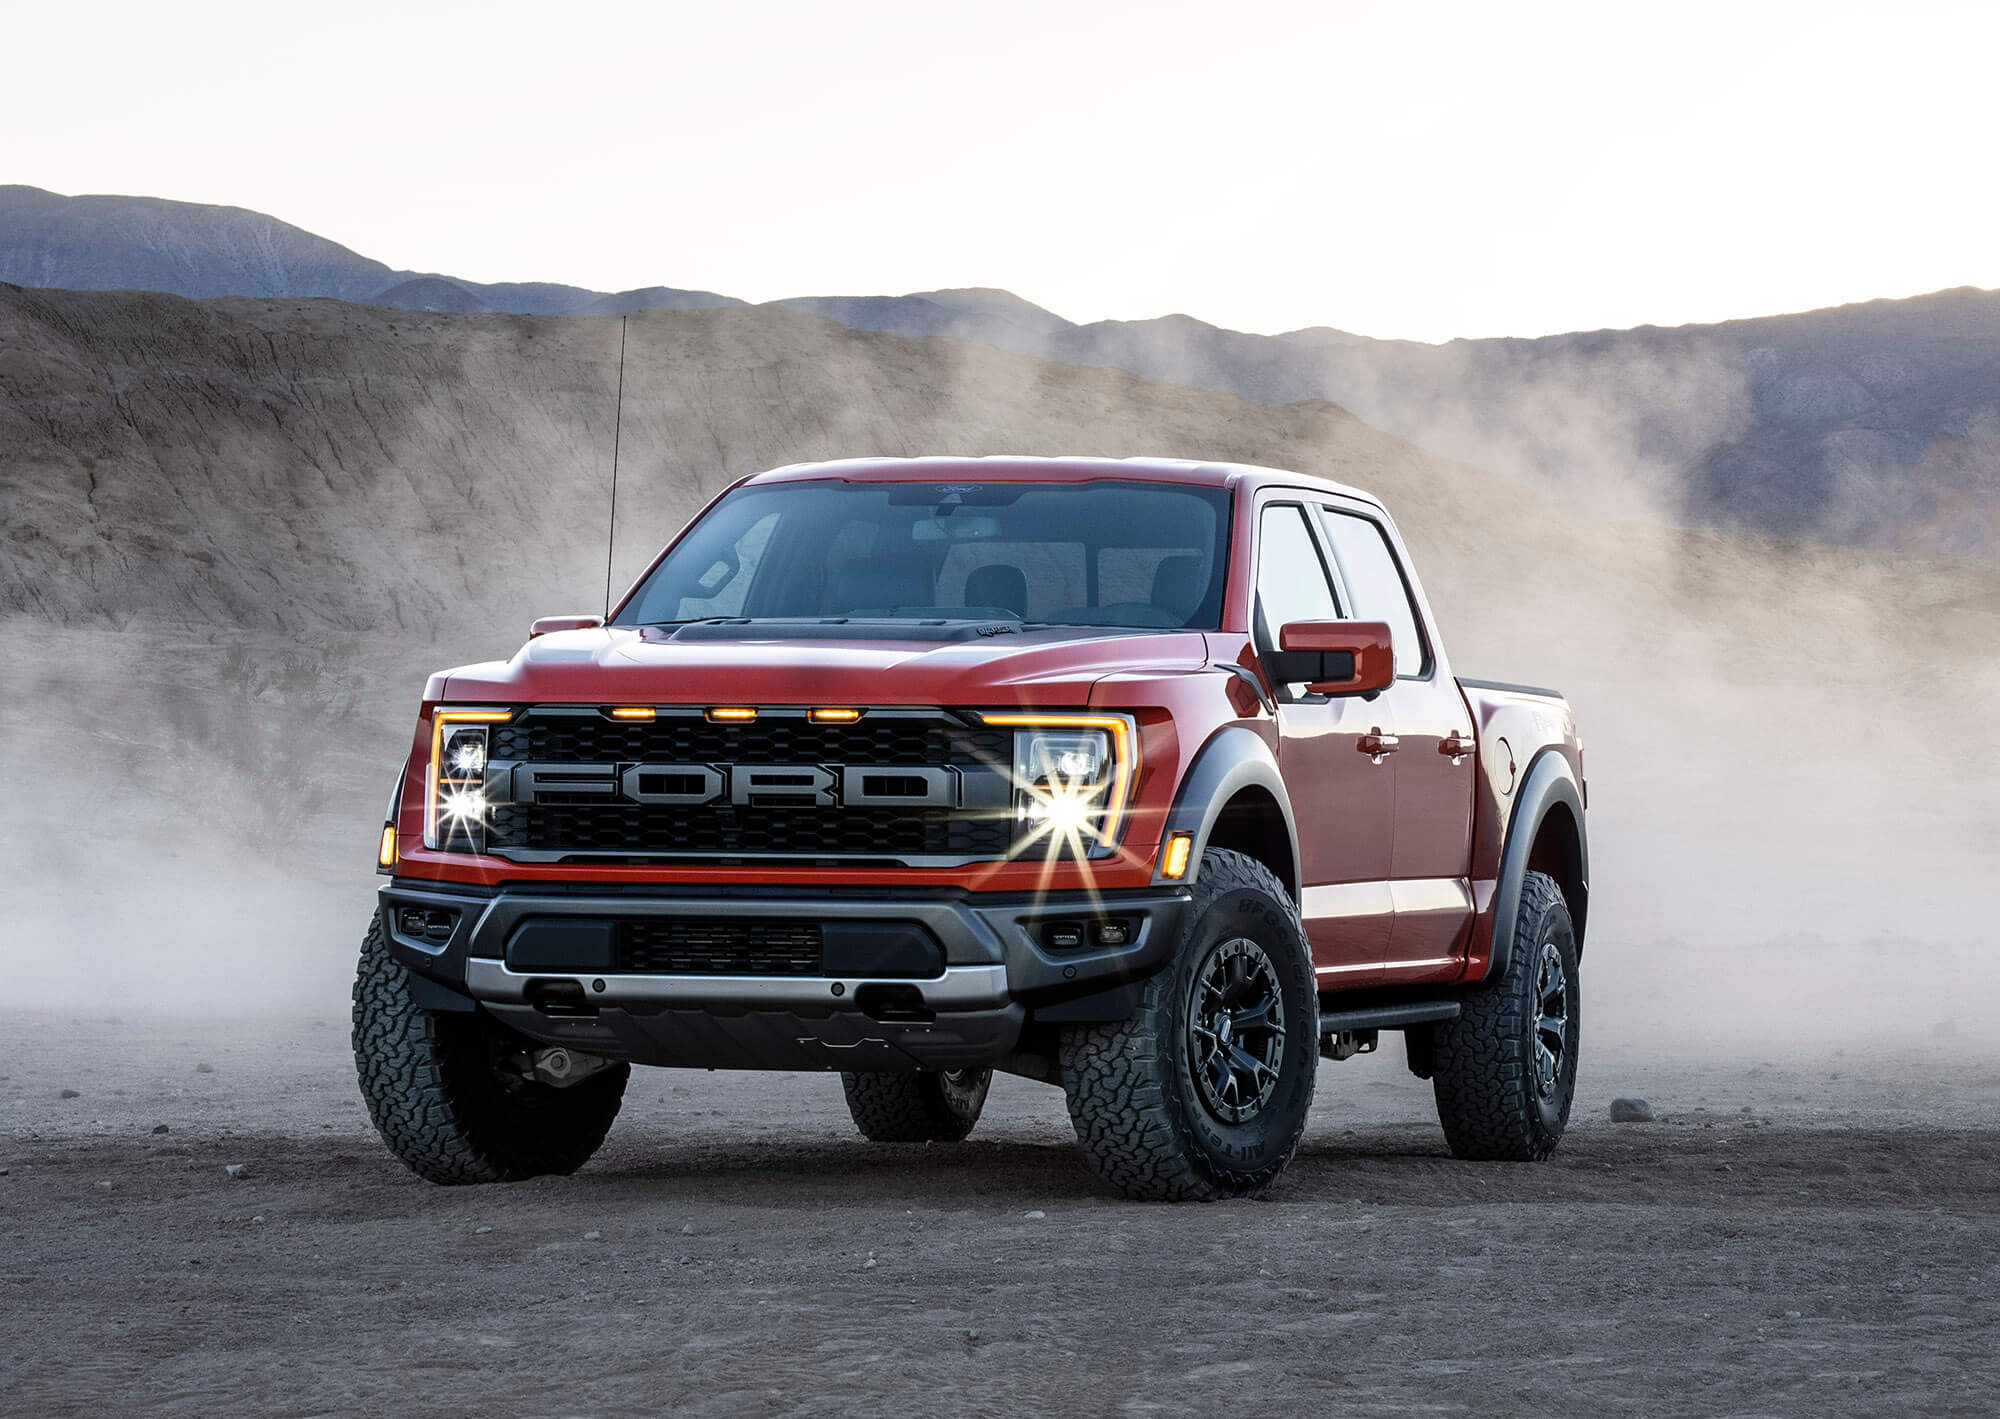 Ford Raptor aftermarket parts and accessories